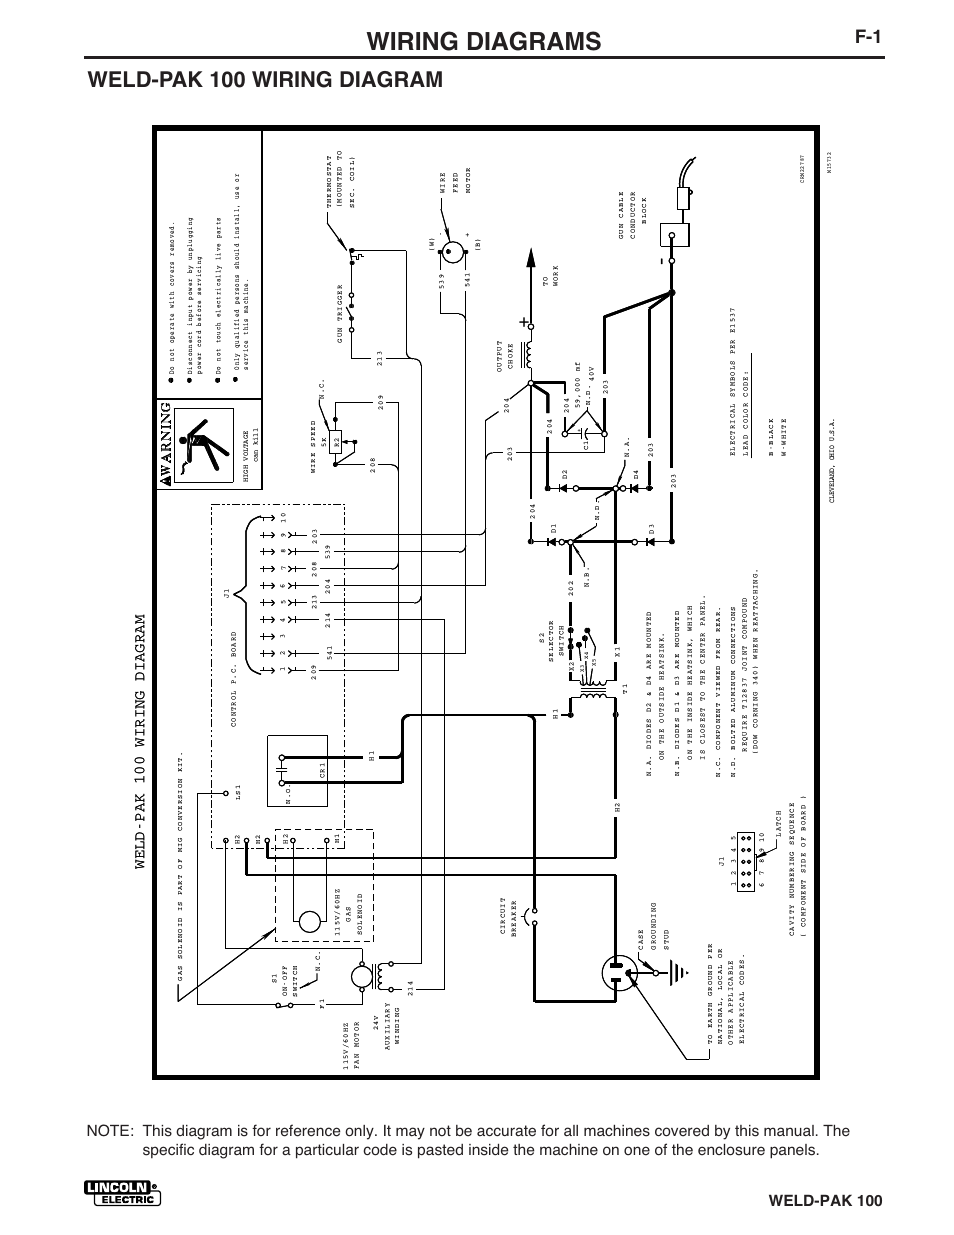 Lincoln Welder Wiring Diagram Libraries Electric Data